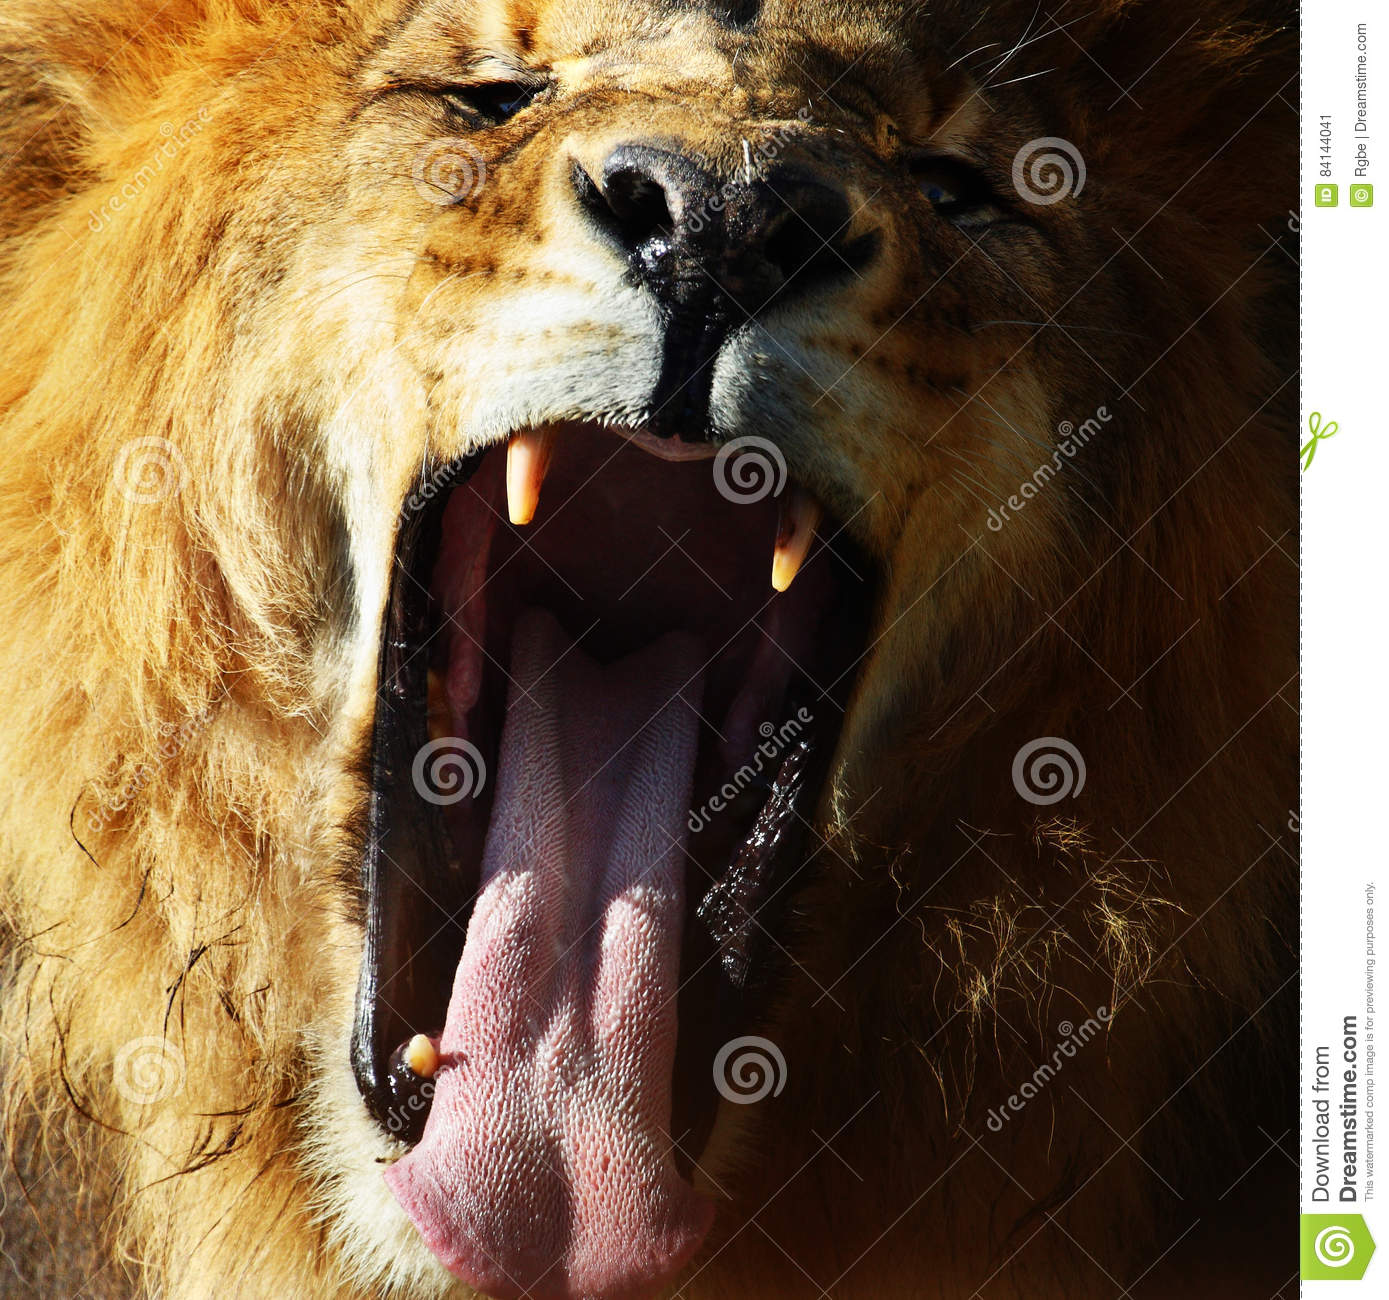 Lion roar stock image Image of portrait hunting roaring 84144041